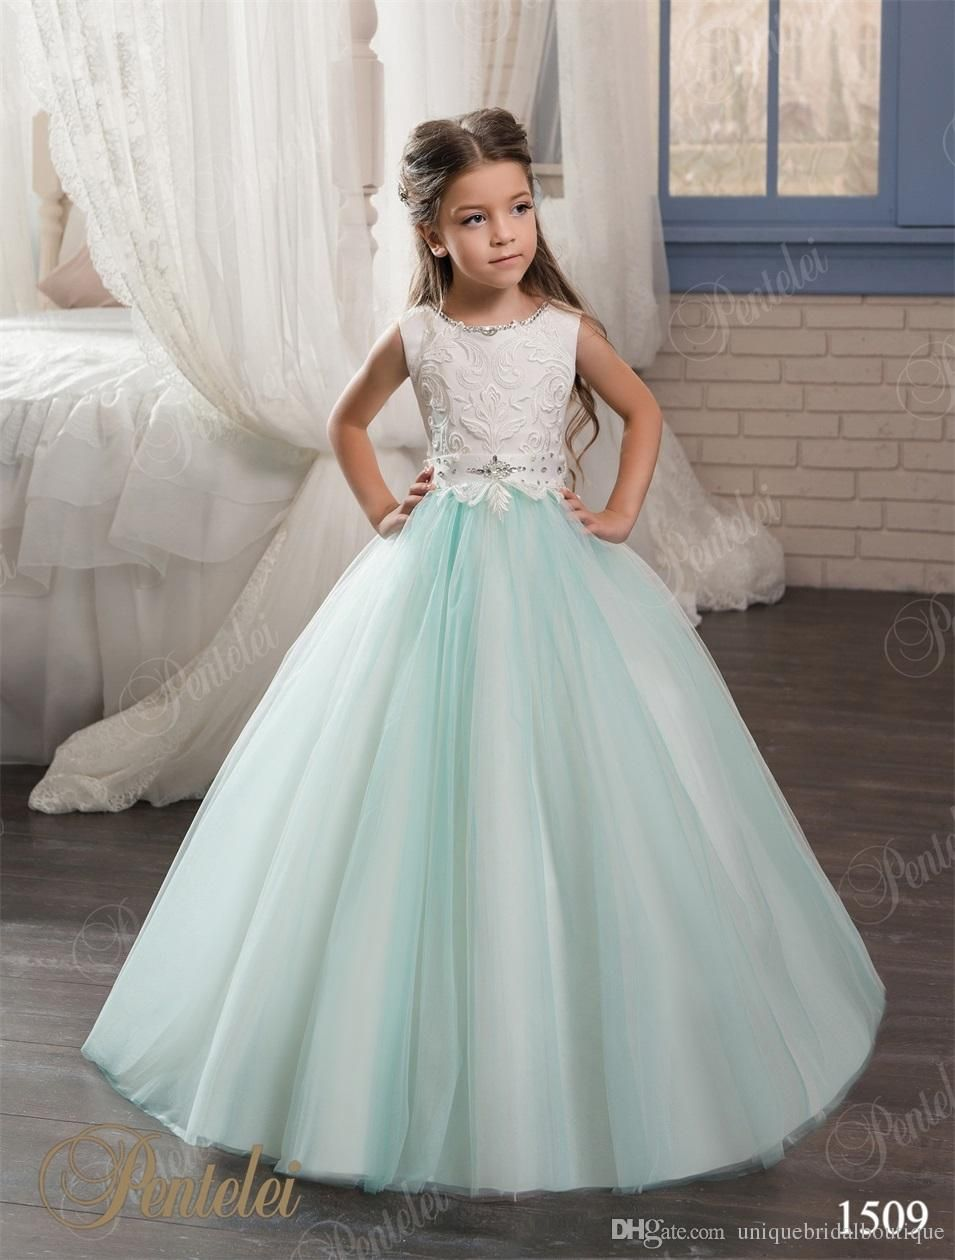 1ed1434976 Kids Evening Gowns 2017 Pentelei With Jewel Neck And Lace Up Back Beaded  Crystals Mint Flower